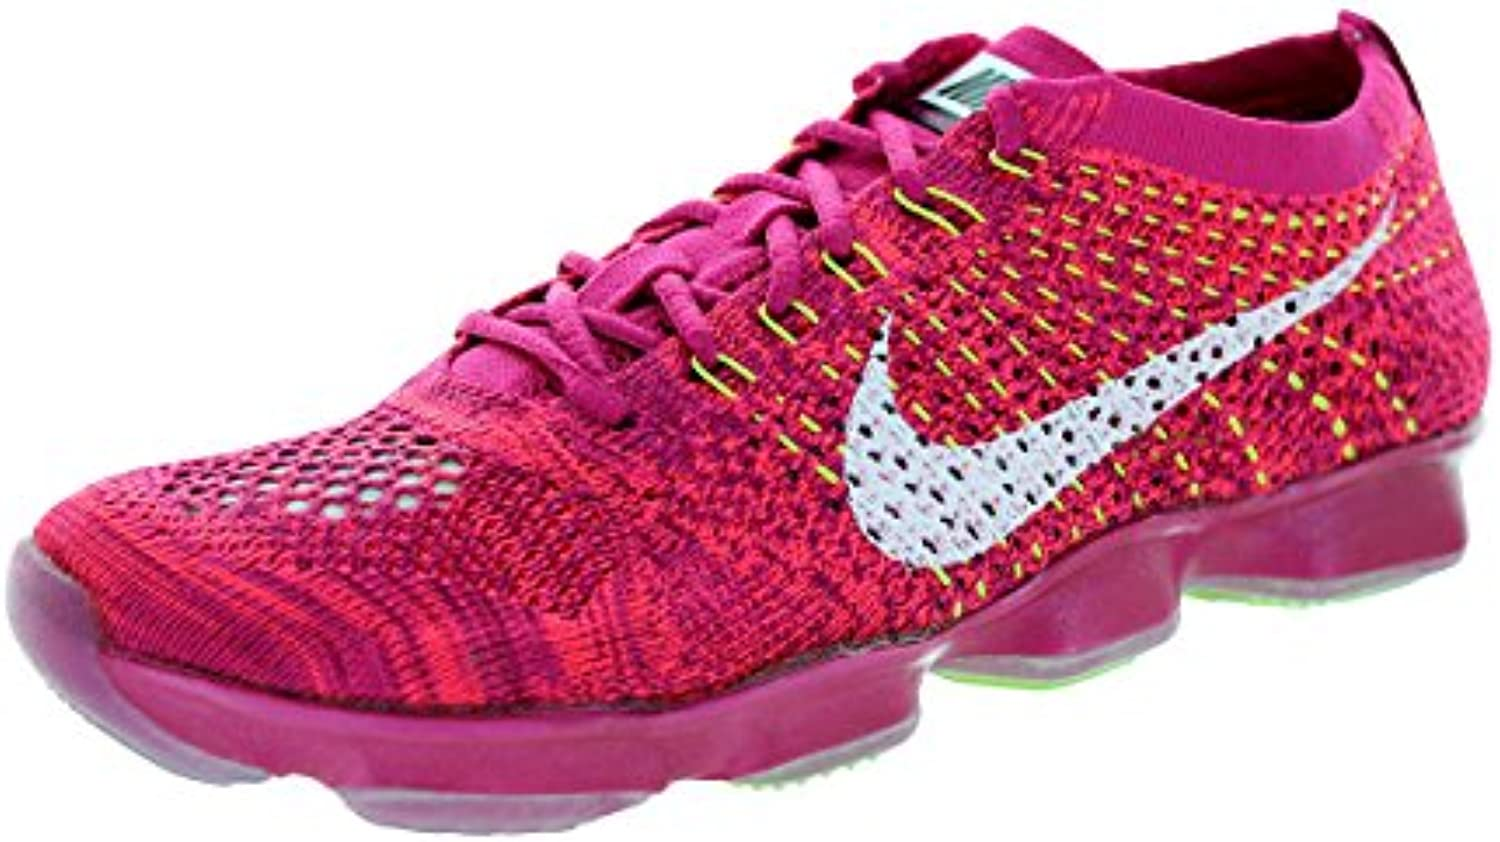 Nike Wmns Flyknit Zoom Agility   frbrry/wht hypr pnch rspbrry